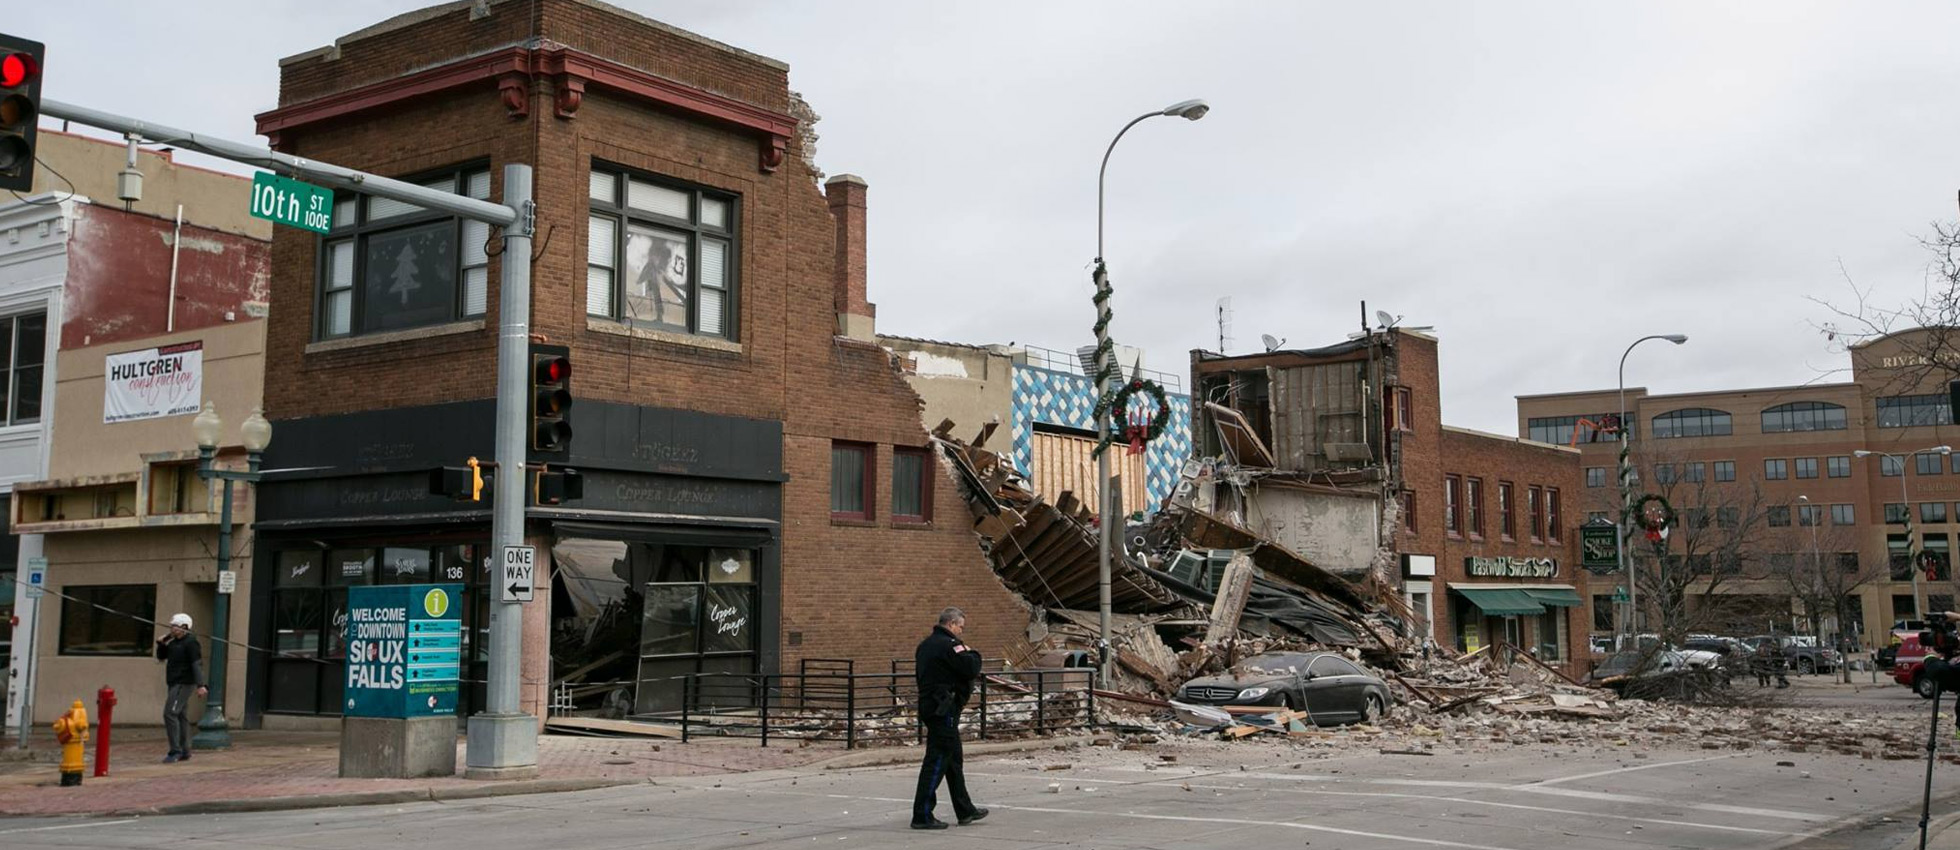 Keloland Auto Mall >> Witness Recalls Aftermath of Building Collapse In Downtown Sioux Falls